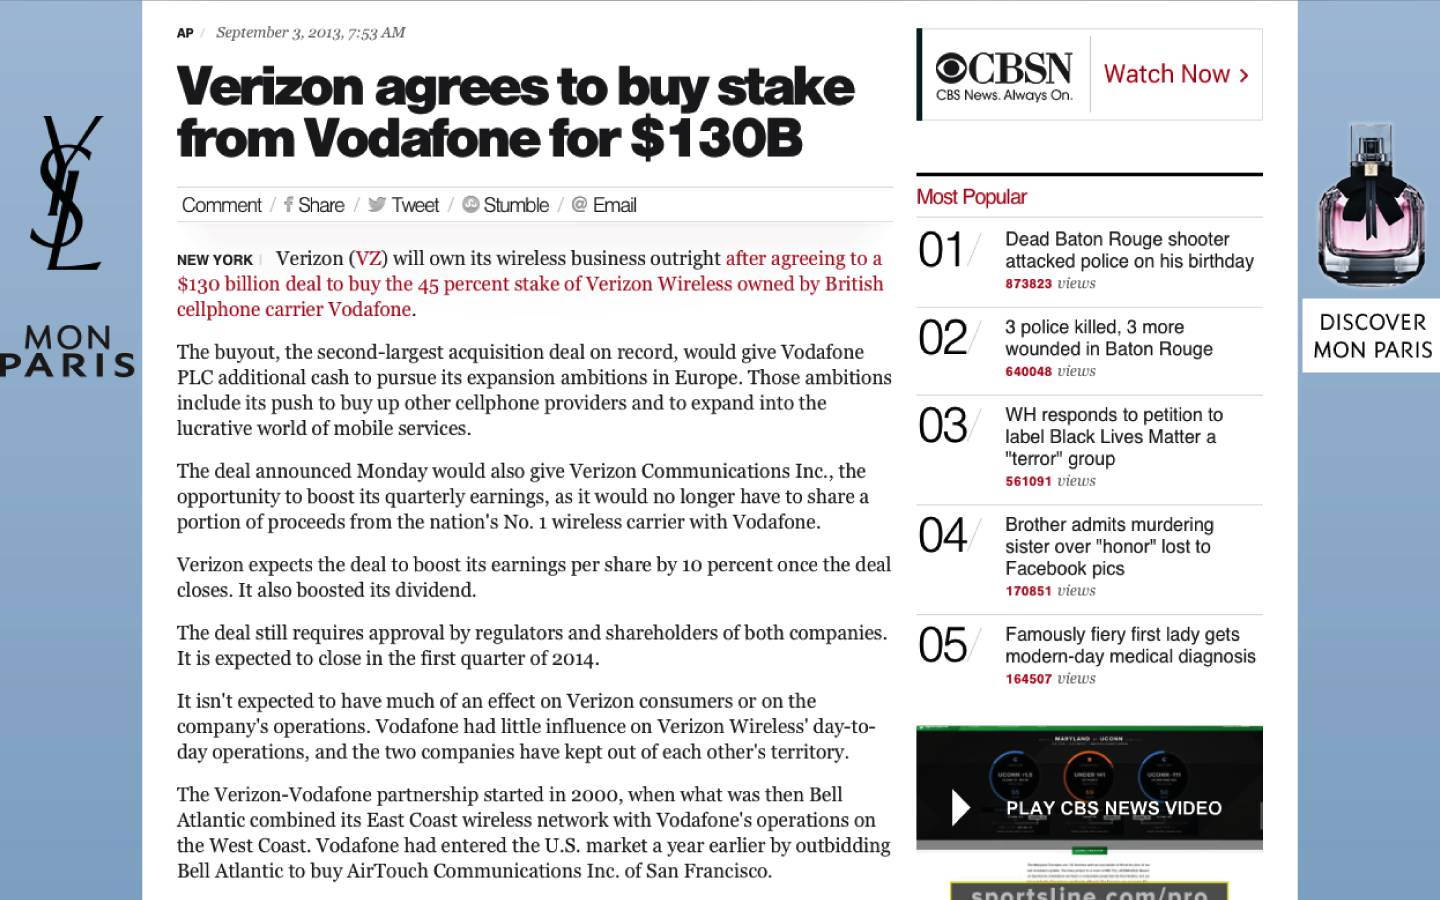 Verizon agrees to buy stake from Vodafone for $130B